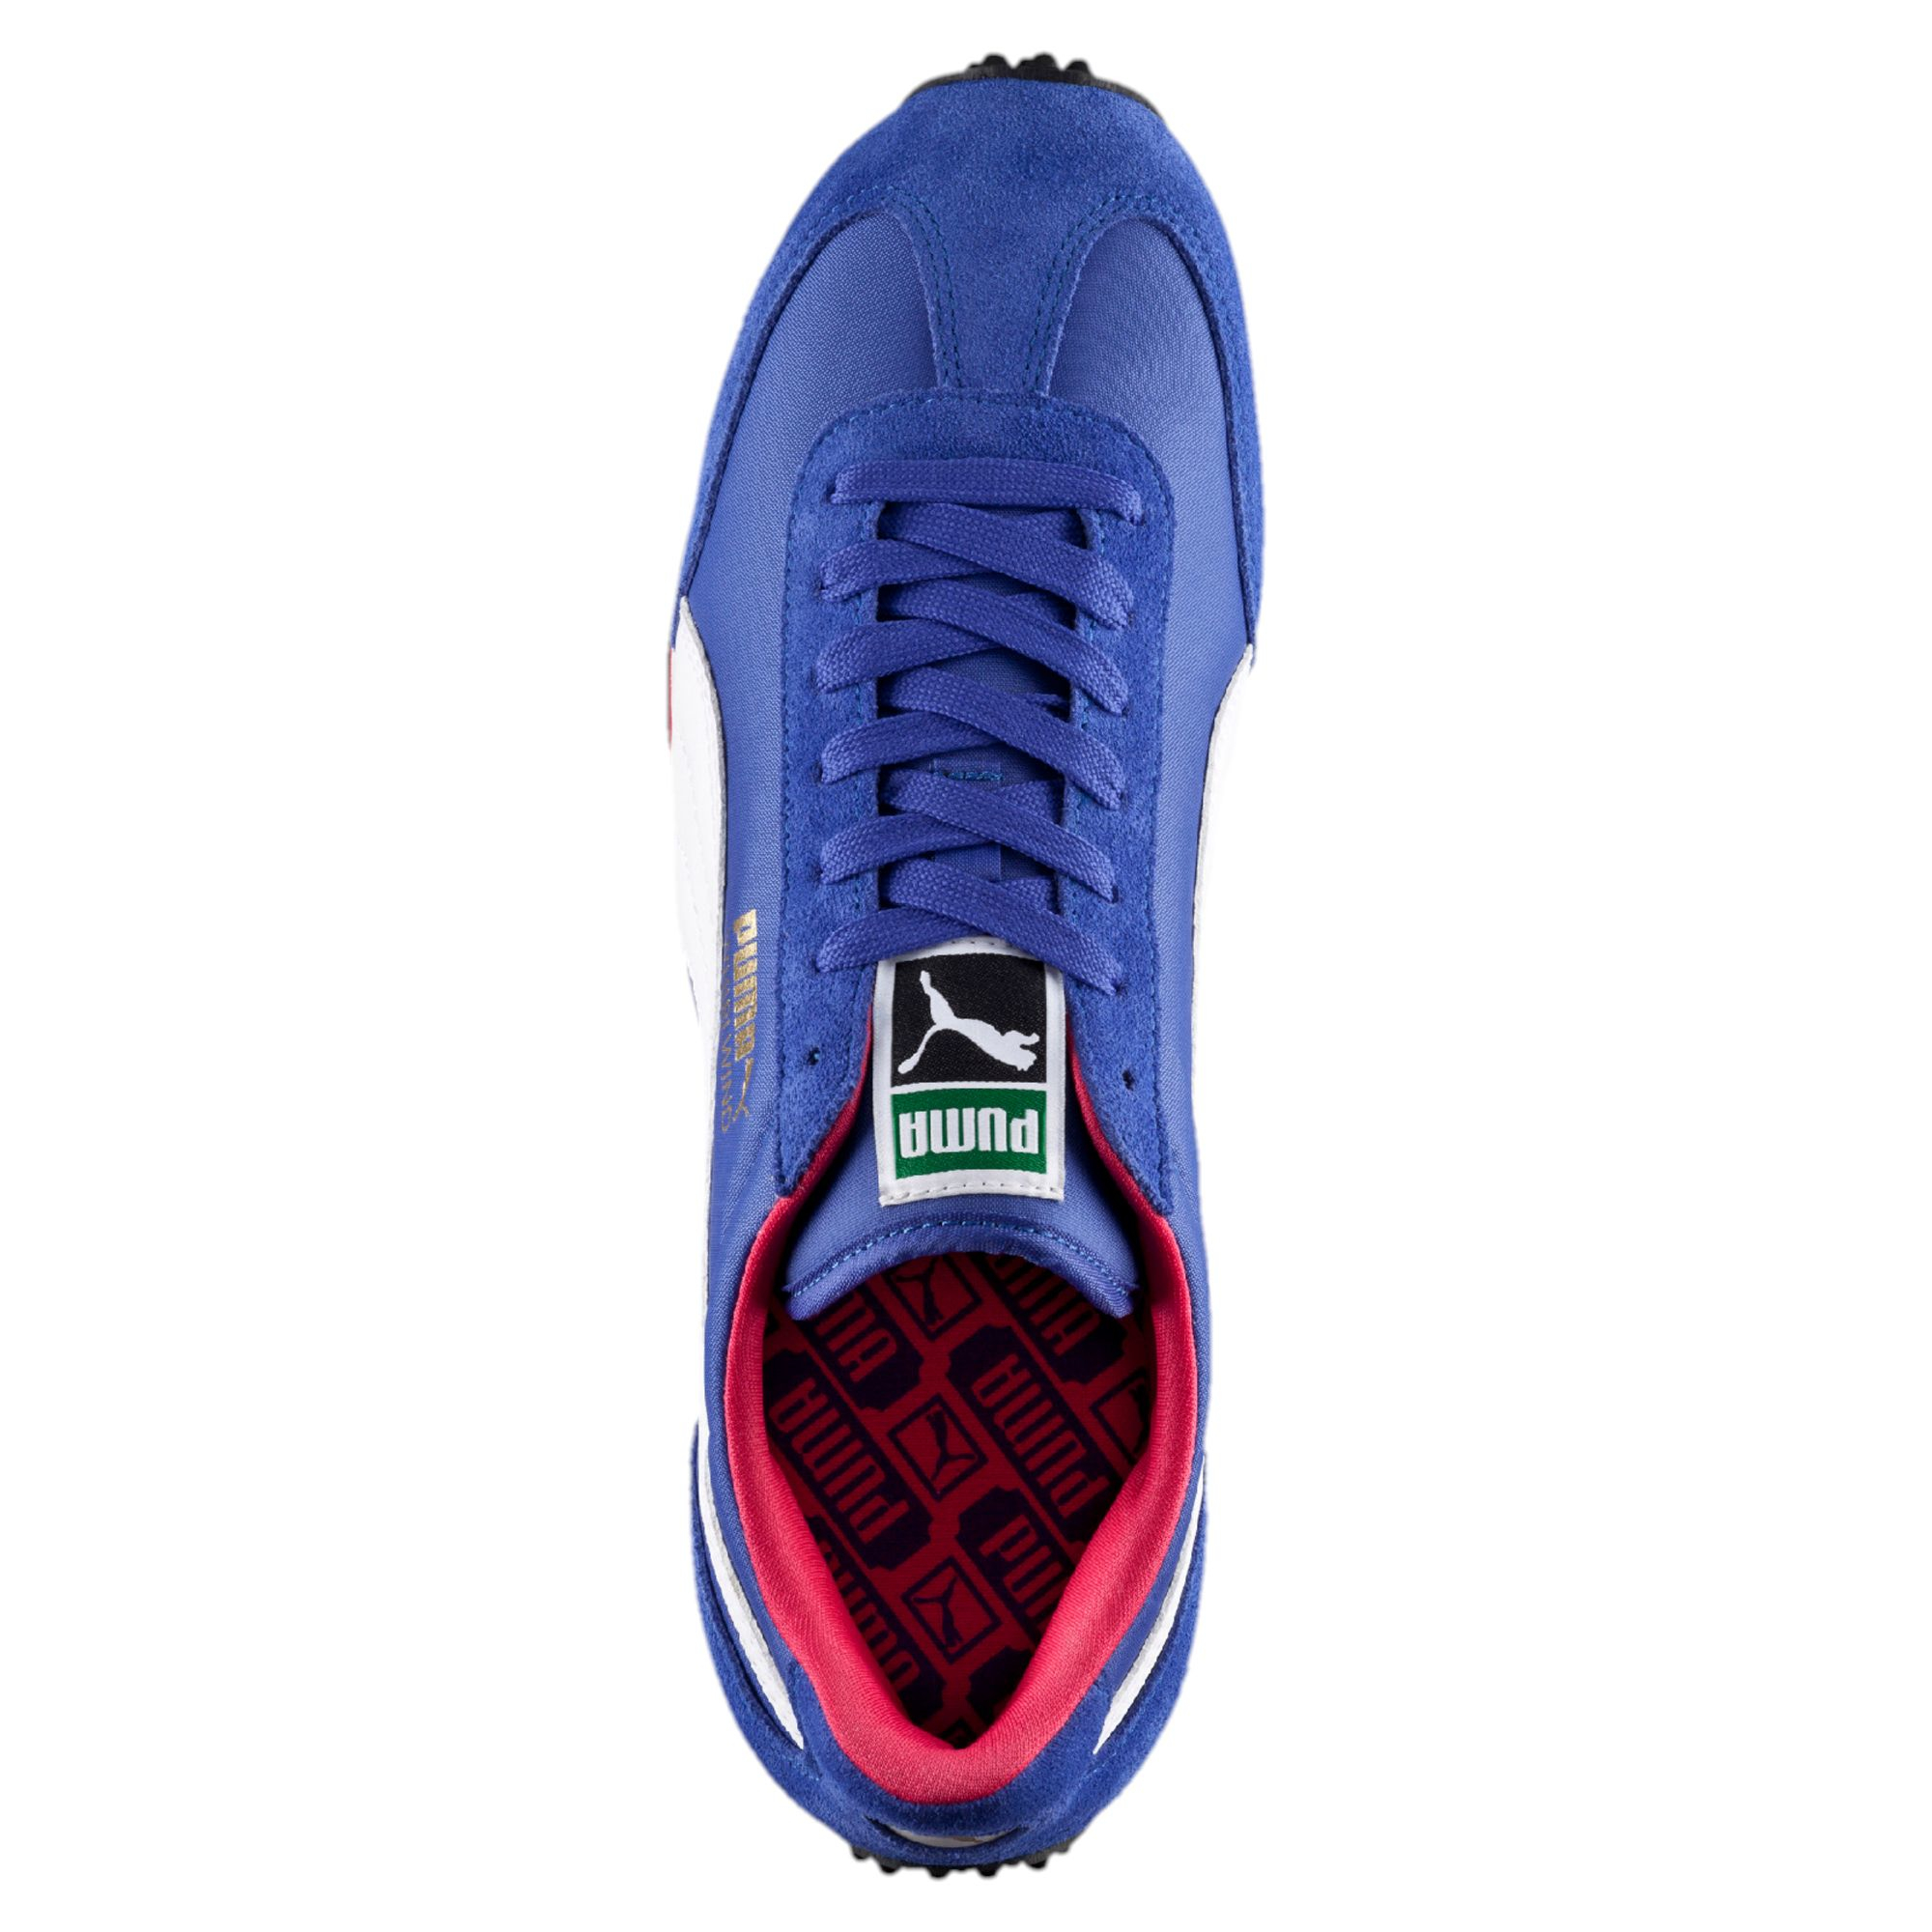 9c8d048bc05eac Lyst - PUMA Whirlwind Classic Men s Sneakers in Blue for Men